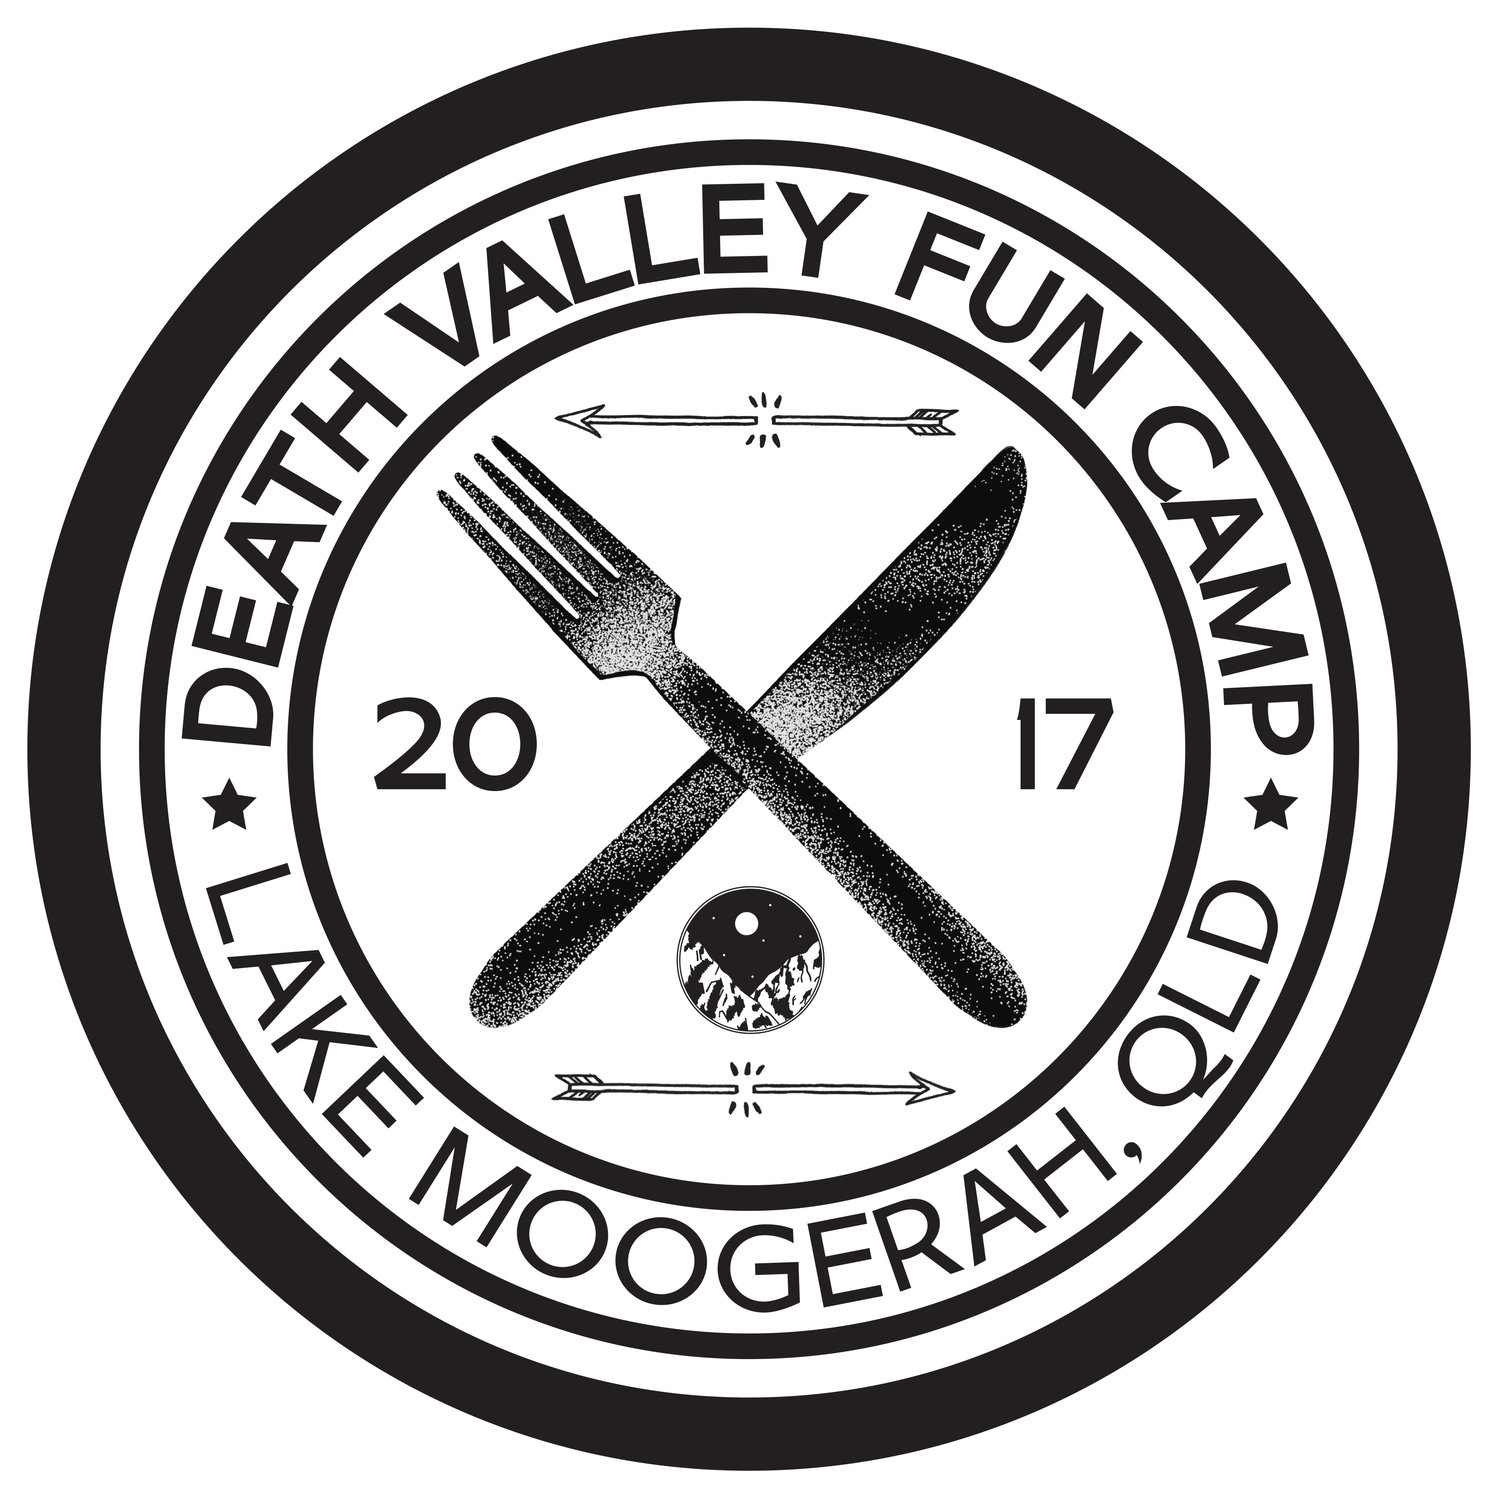 DEATH VALLEY FUN CAMP